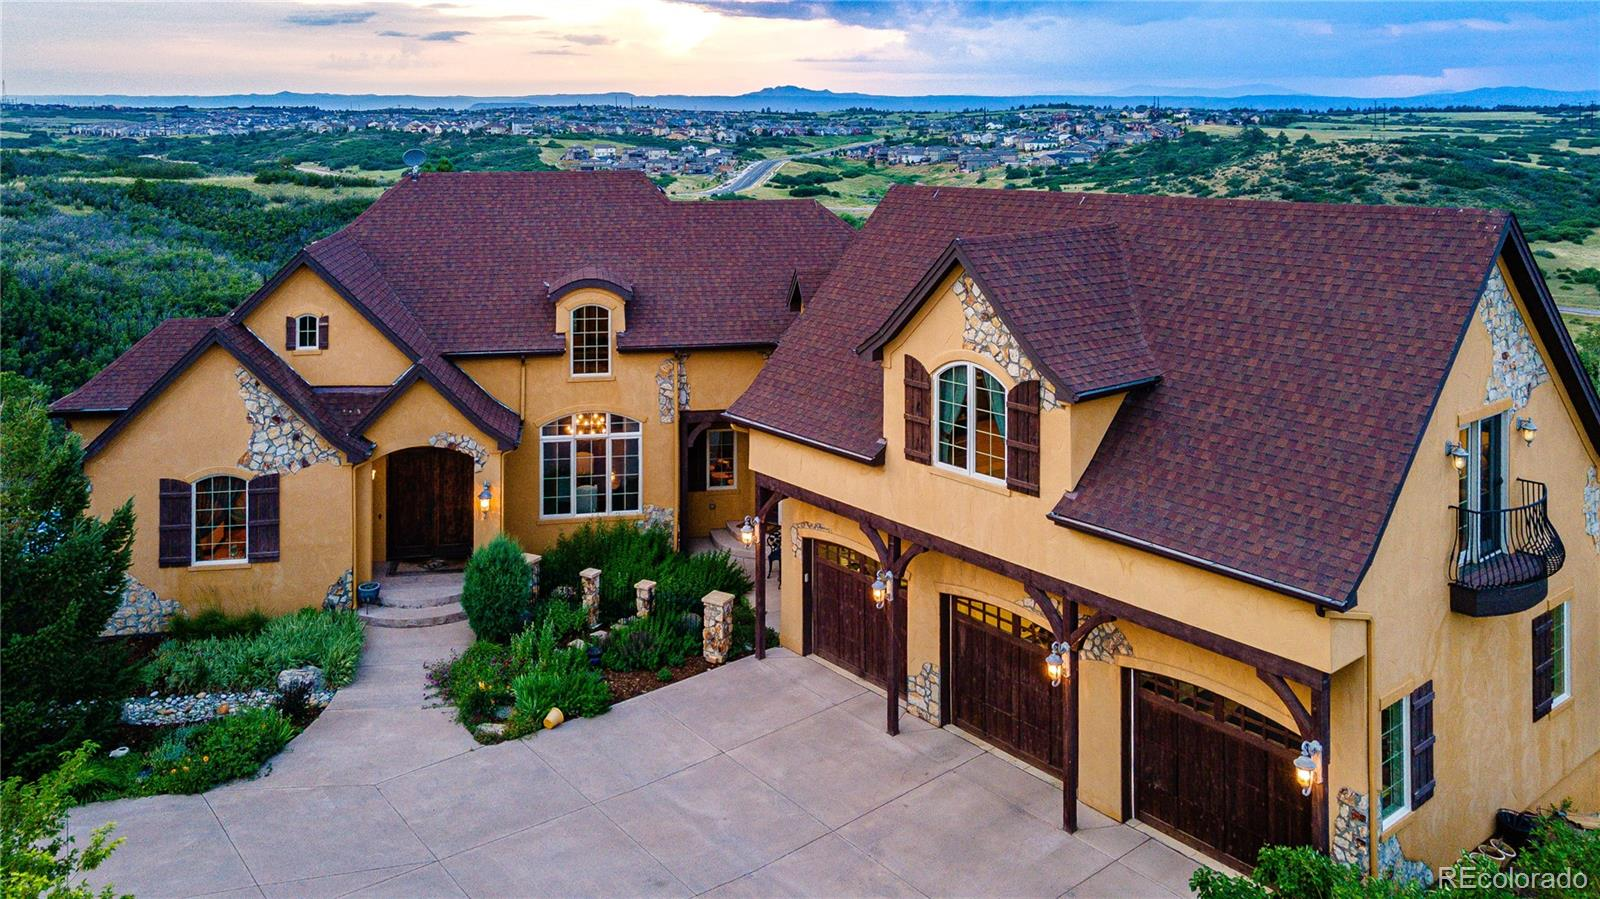 Imagine an Italian Tuscan Villa dressed in a Warm Ochre Stucco Exterior w Dramatically Exposed Rock Details, Juliet Balconies, Wood Beams & Rod Iron Accents Paired Perfectly w an Interior Reminiscent of a Rich Villa Combined w an Exquisite Custom Colorado Mountain Home Boasting Soaring Vaults, Walls Stone, Granite Slabs, Alabaster, Rod Iron, Copper, Travertine & 360 Degree Rocky Mountain & Open Space Views...Welcome Home! This well designed custom home features elegant interior appointments w an abundance of living & storage space in both the main residence & the carriage house. Five bedrooms & five baths reside in the main residence along w a gym, pub-styled bar, wine cellar, game room & office. The private master suite lives on the main level, boasting an oversized steam shower, jetted soaking tub, travertine tile, copper sinks, a bayed window retreat w magnificent views & a large walk-in w a custom cherry closet system. The upper-level mother-in-law living space includes a kitchenette, dining area, loft/flex space, bedroom, 3/4 bath & a private office. The lower-level features a magnificent pub-styled bar, wine cellar, game room, living room, gym, three bedrooms & two bathrooms. Outside an ideal carriage house boasts a wonderful living arrangement of one bedroom, one bath, kitchen, living & dining. Six oversized garage bays easily house all your vehicles & extra toys and include a charging station. The sparkling pool, pool deck, 3/4 bath & covered patio invite summertime fun & gated backyard playground paired w the trex deck and large patio accommodate all your outdoor entertaining needs with grace. This exclusive address lives on nearly four acres backing to dedicated open space which is perched perfectly on a cul-de-sac with surround views from Pikes Peak to Mount Evans and beyond. The proximity to central Castle Rock is ideal providing abundant dining, shopping, miscellaneous services, the Outlets, Tony's Market and quick commutes thanks to I-25 and Santa Fe.